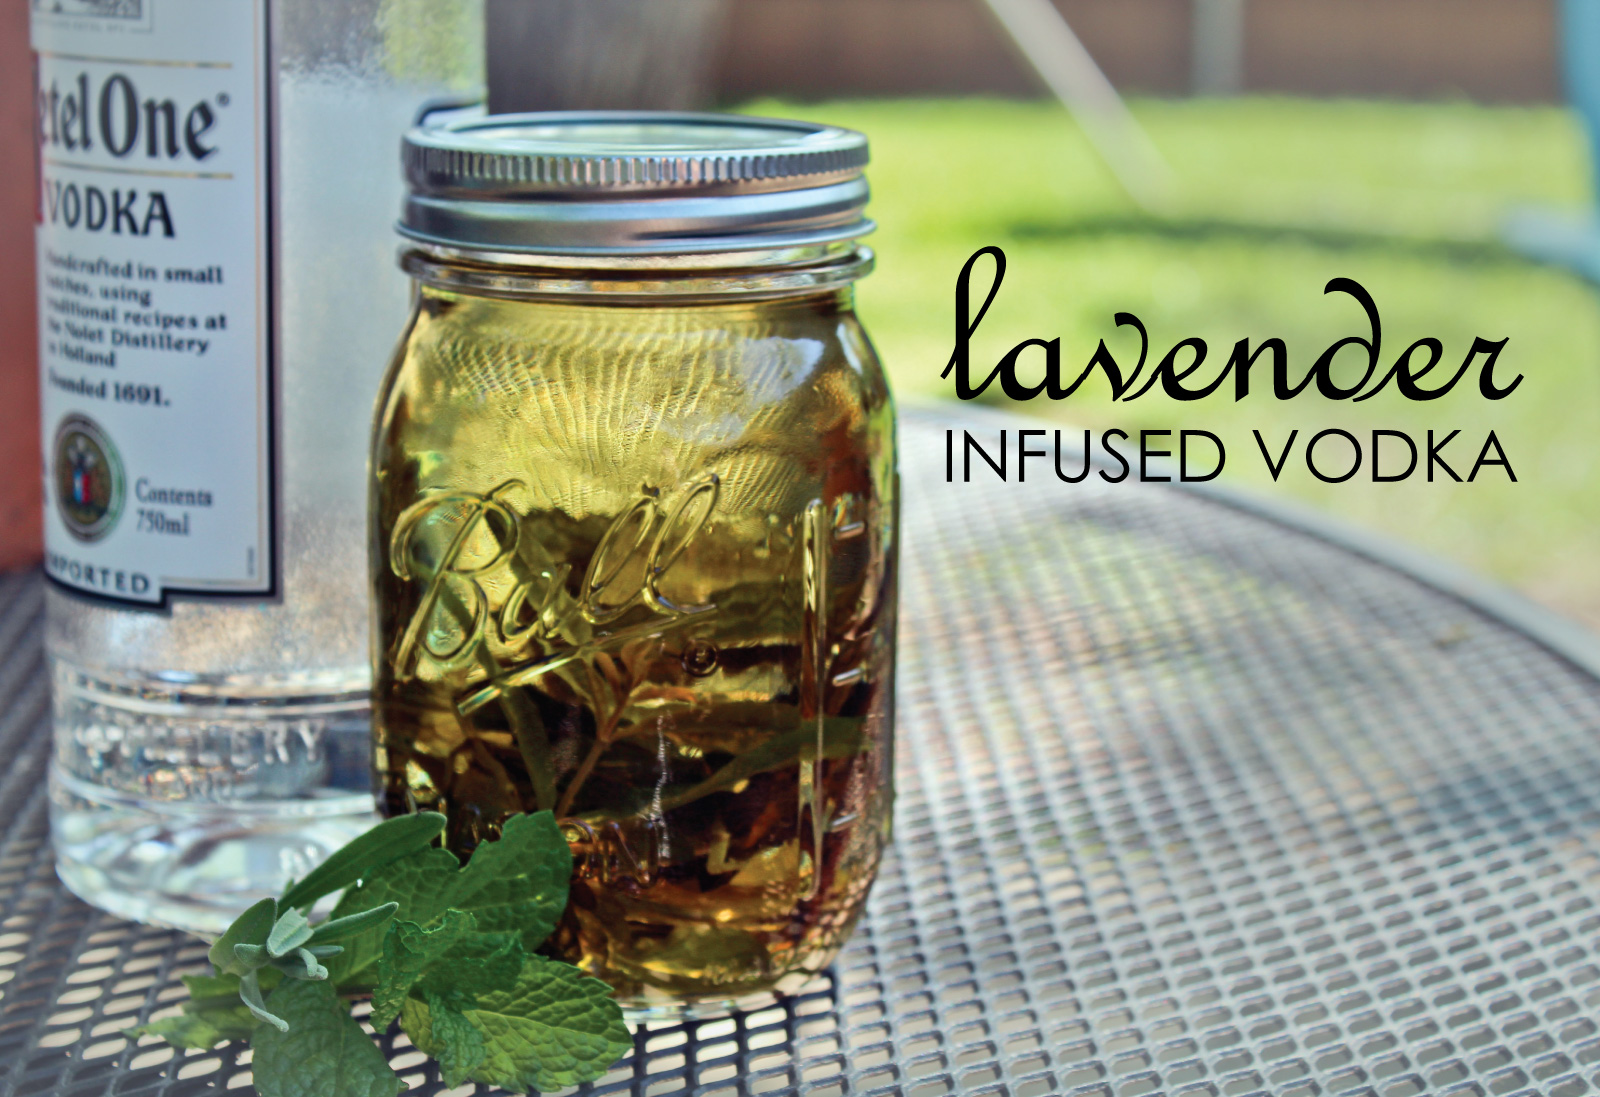 Lavender Infused Vodka. Story and photo by Andrew Yenne